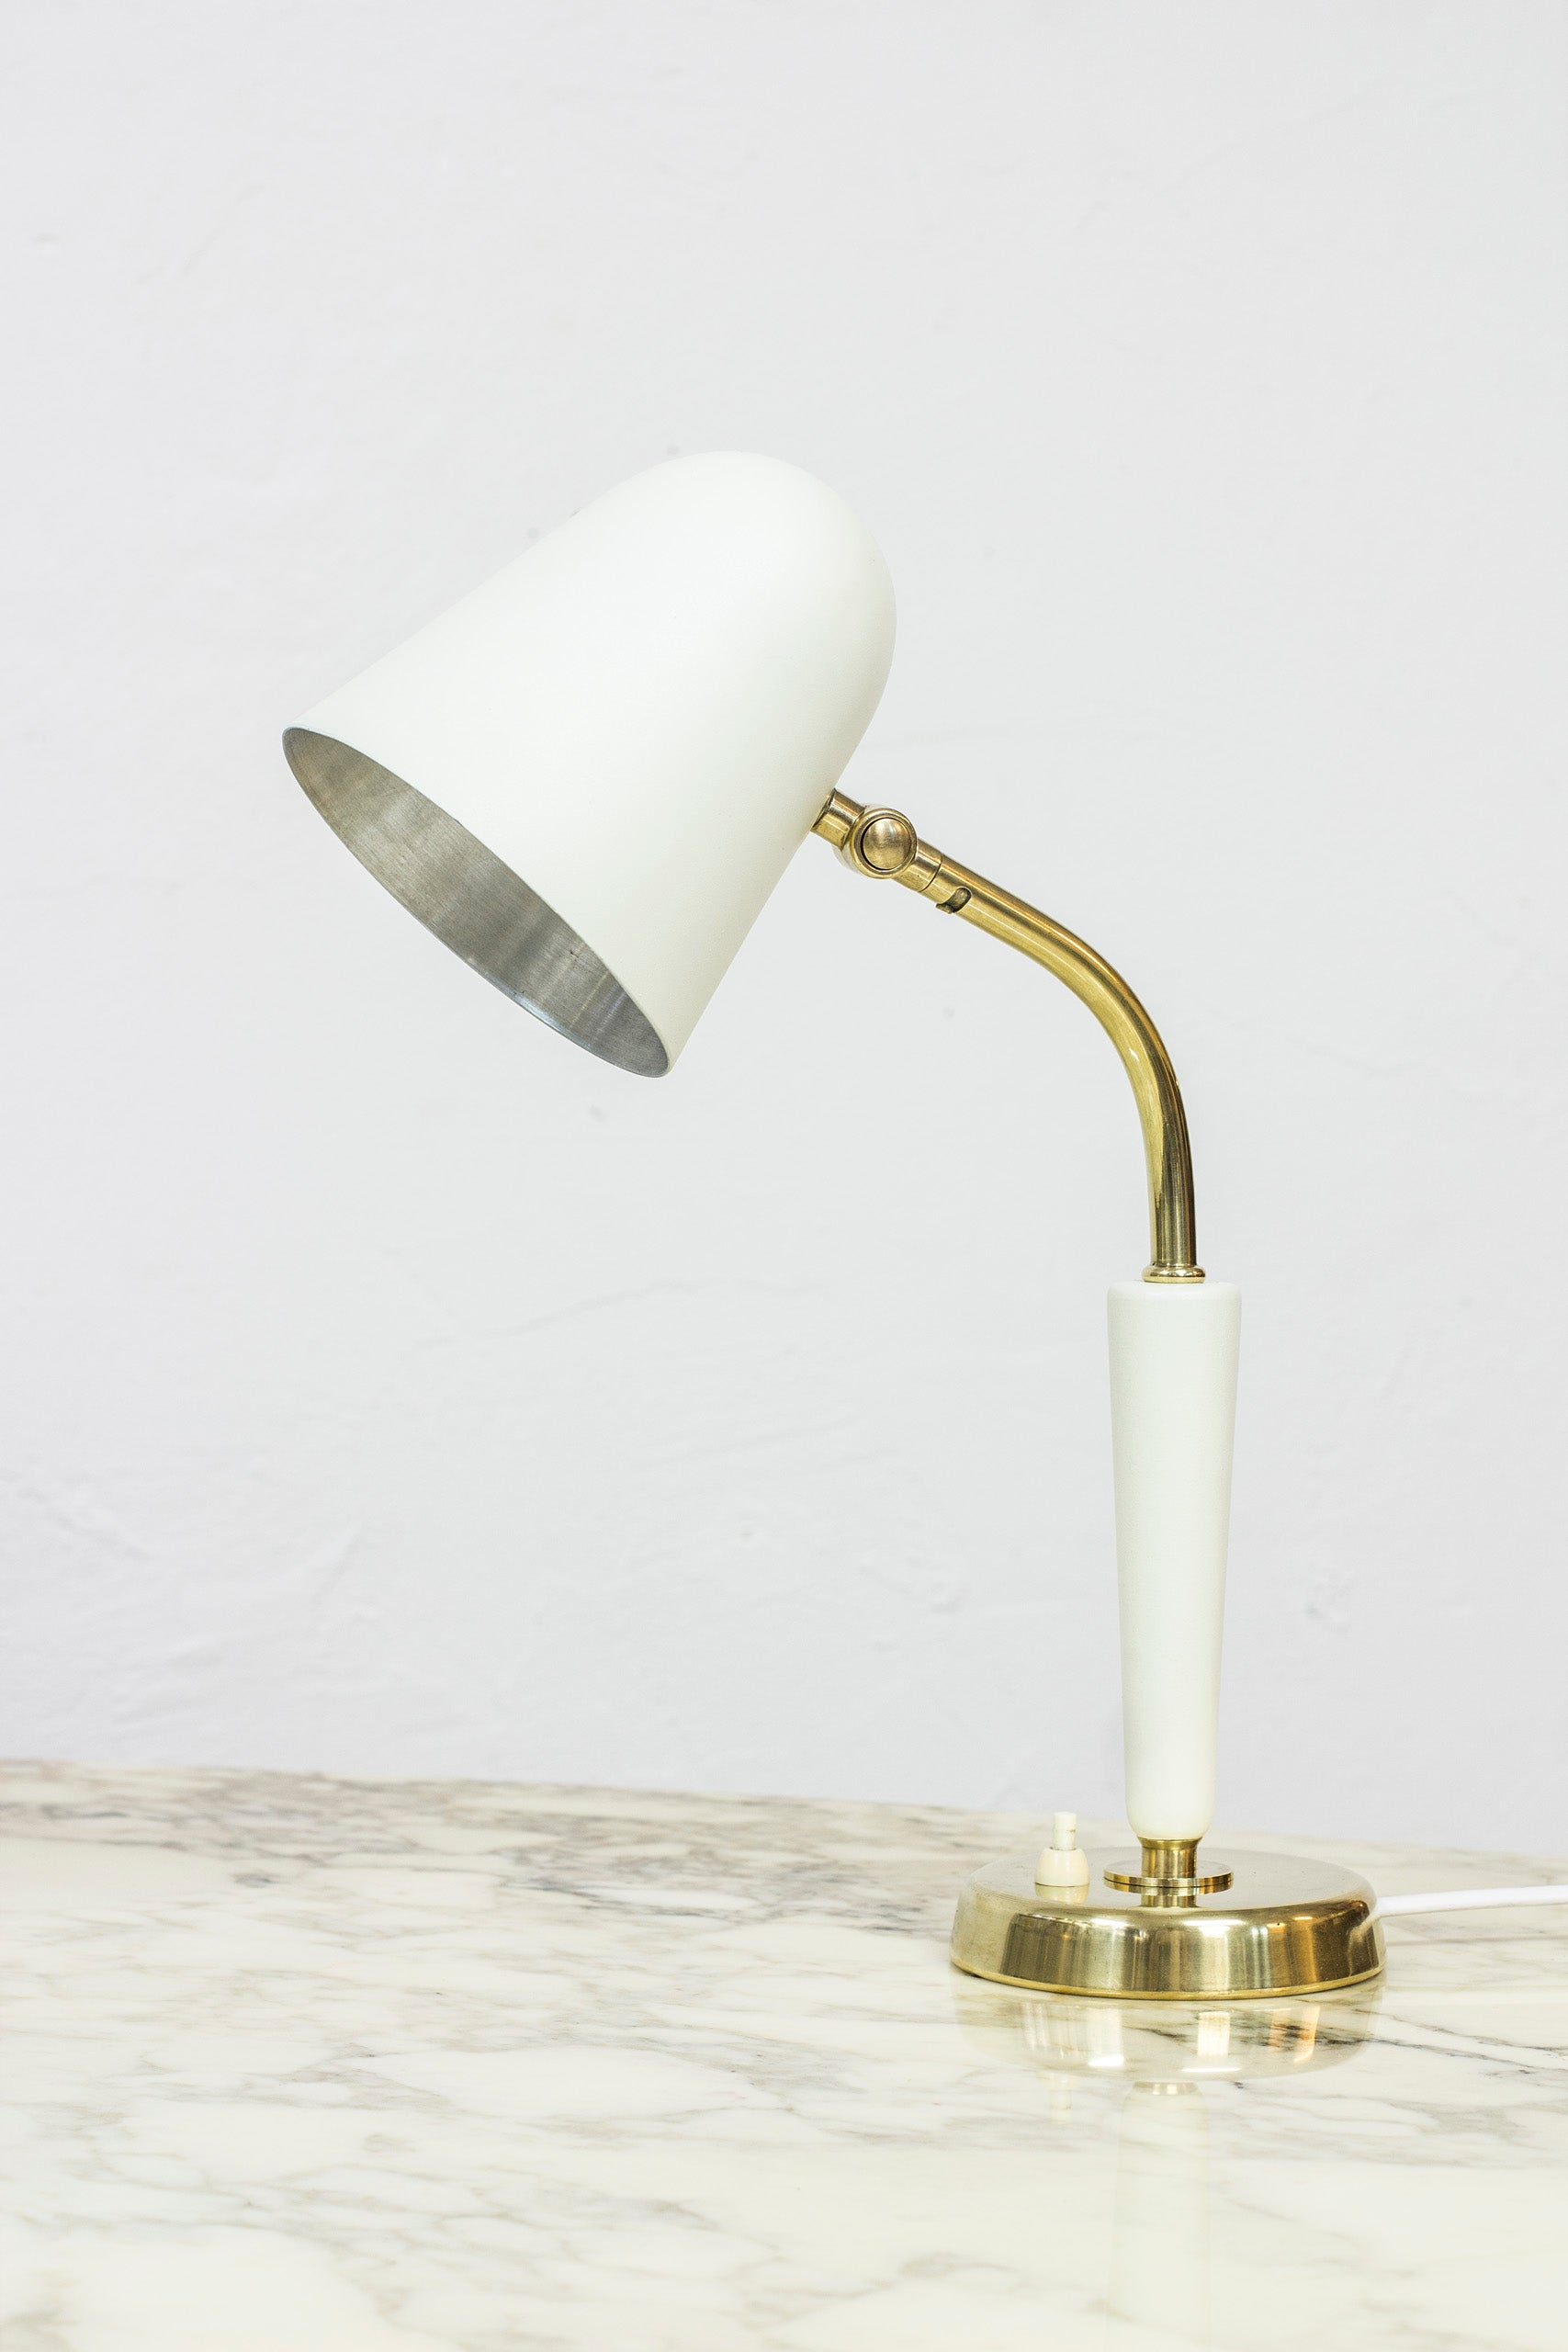 Table lamp by Bertil Brisborg for NK